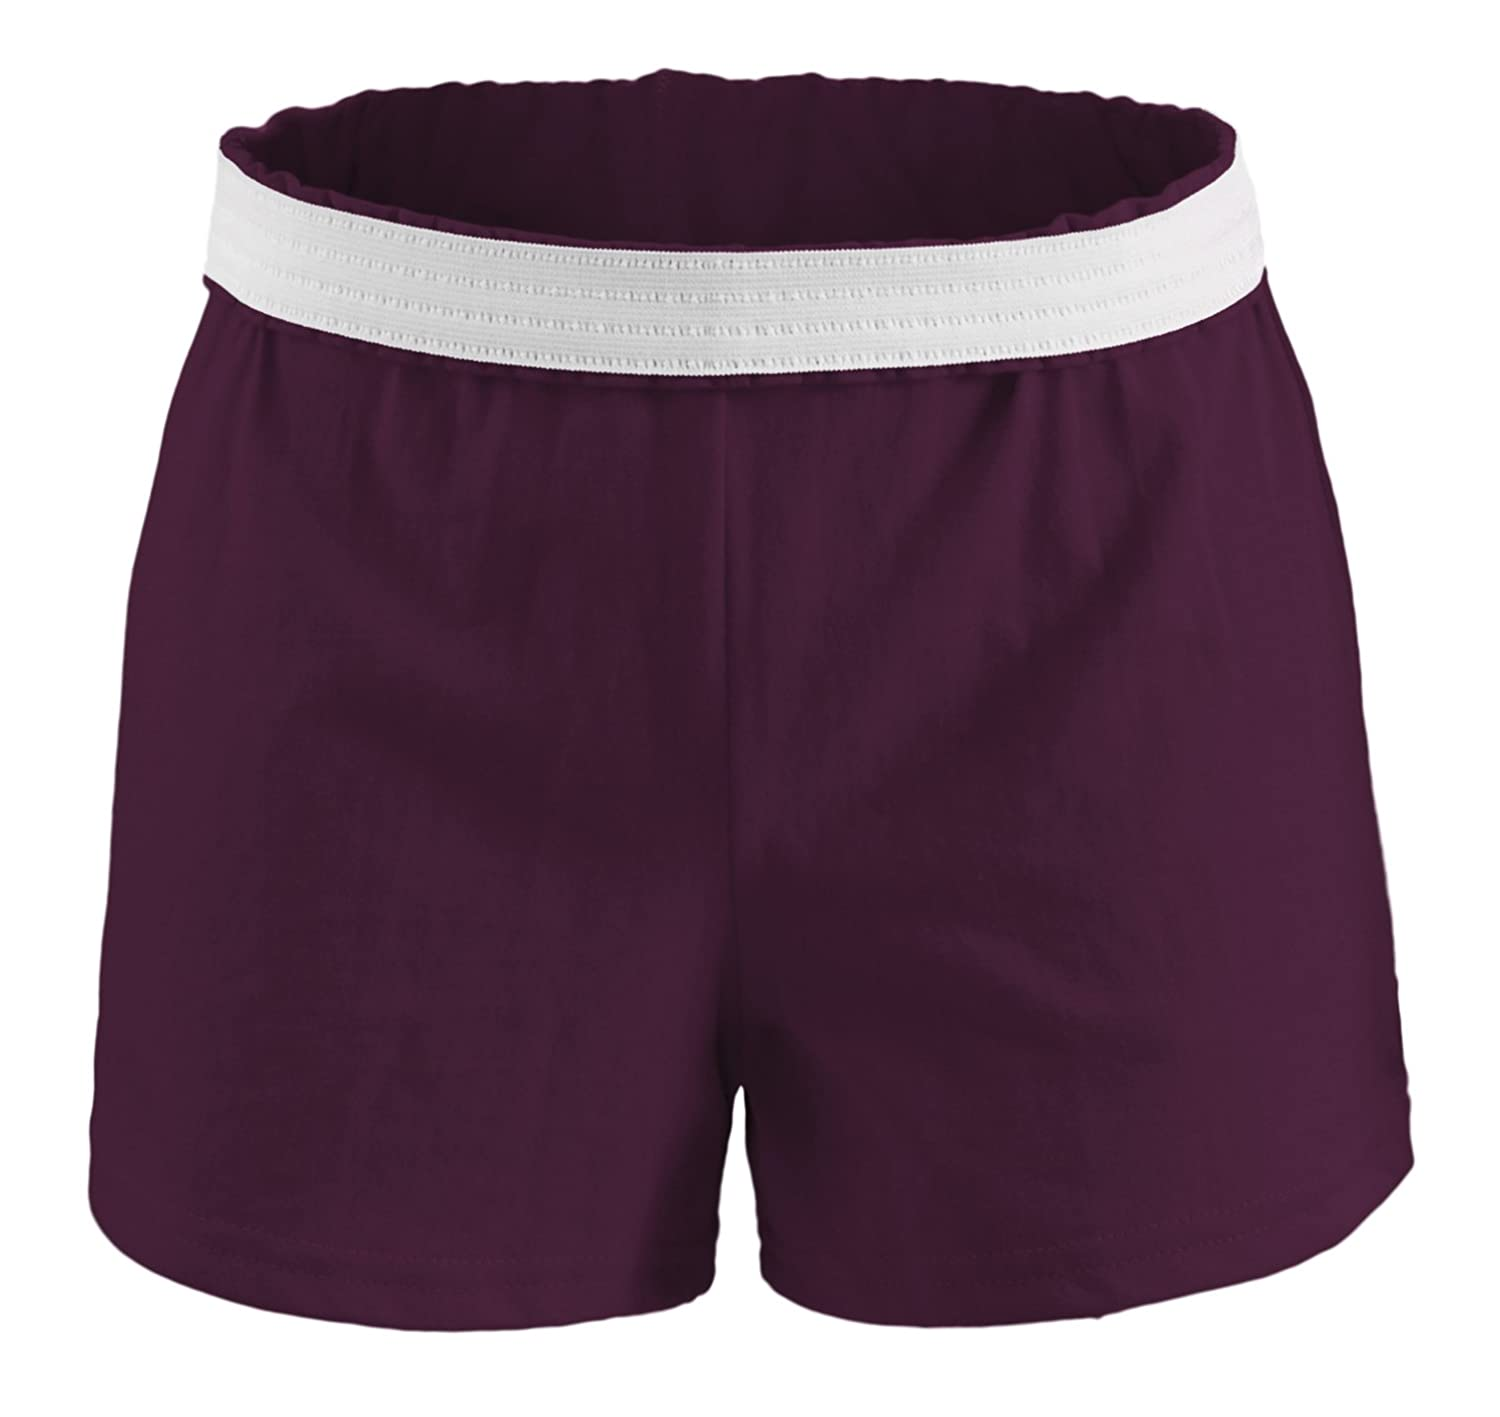 Soffe Girls Big Girls Authentic Shorts